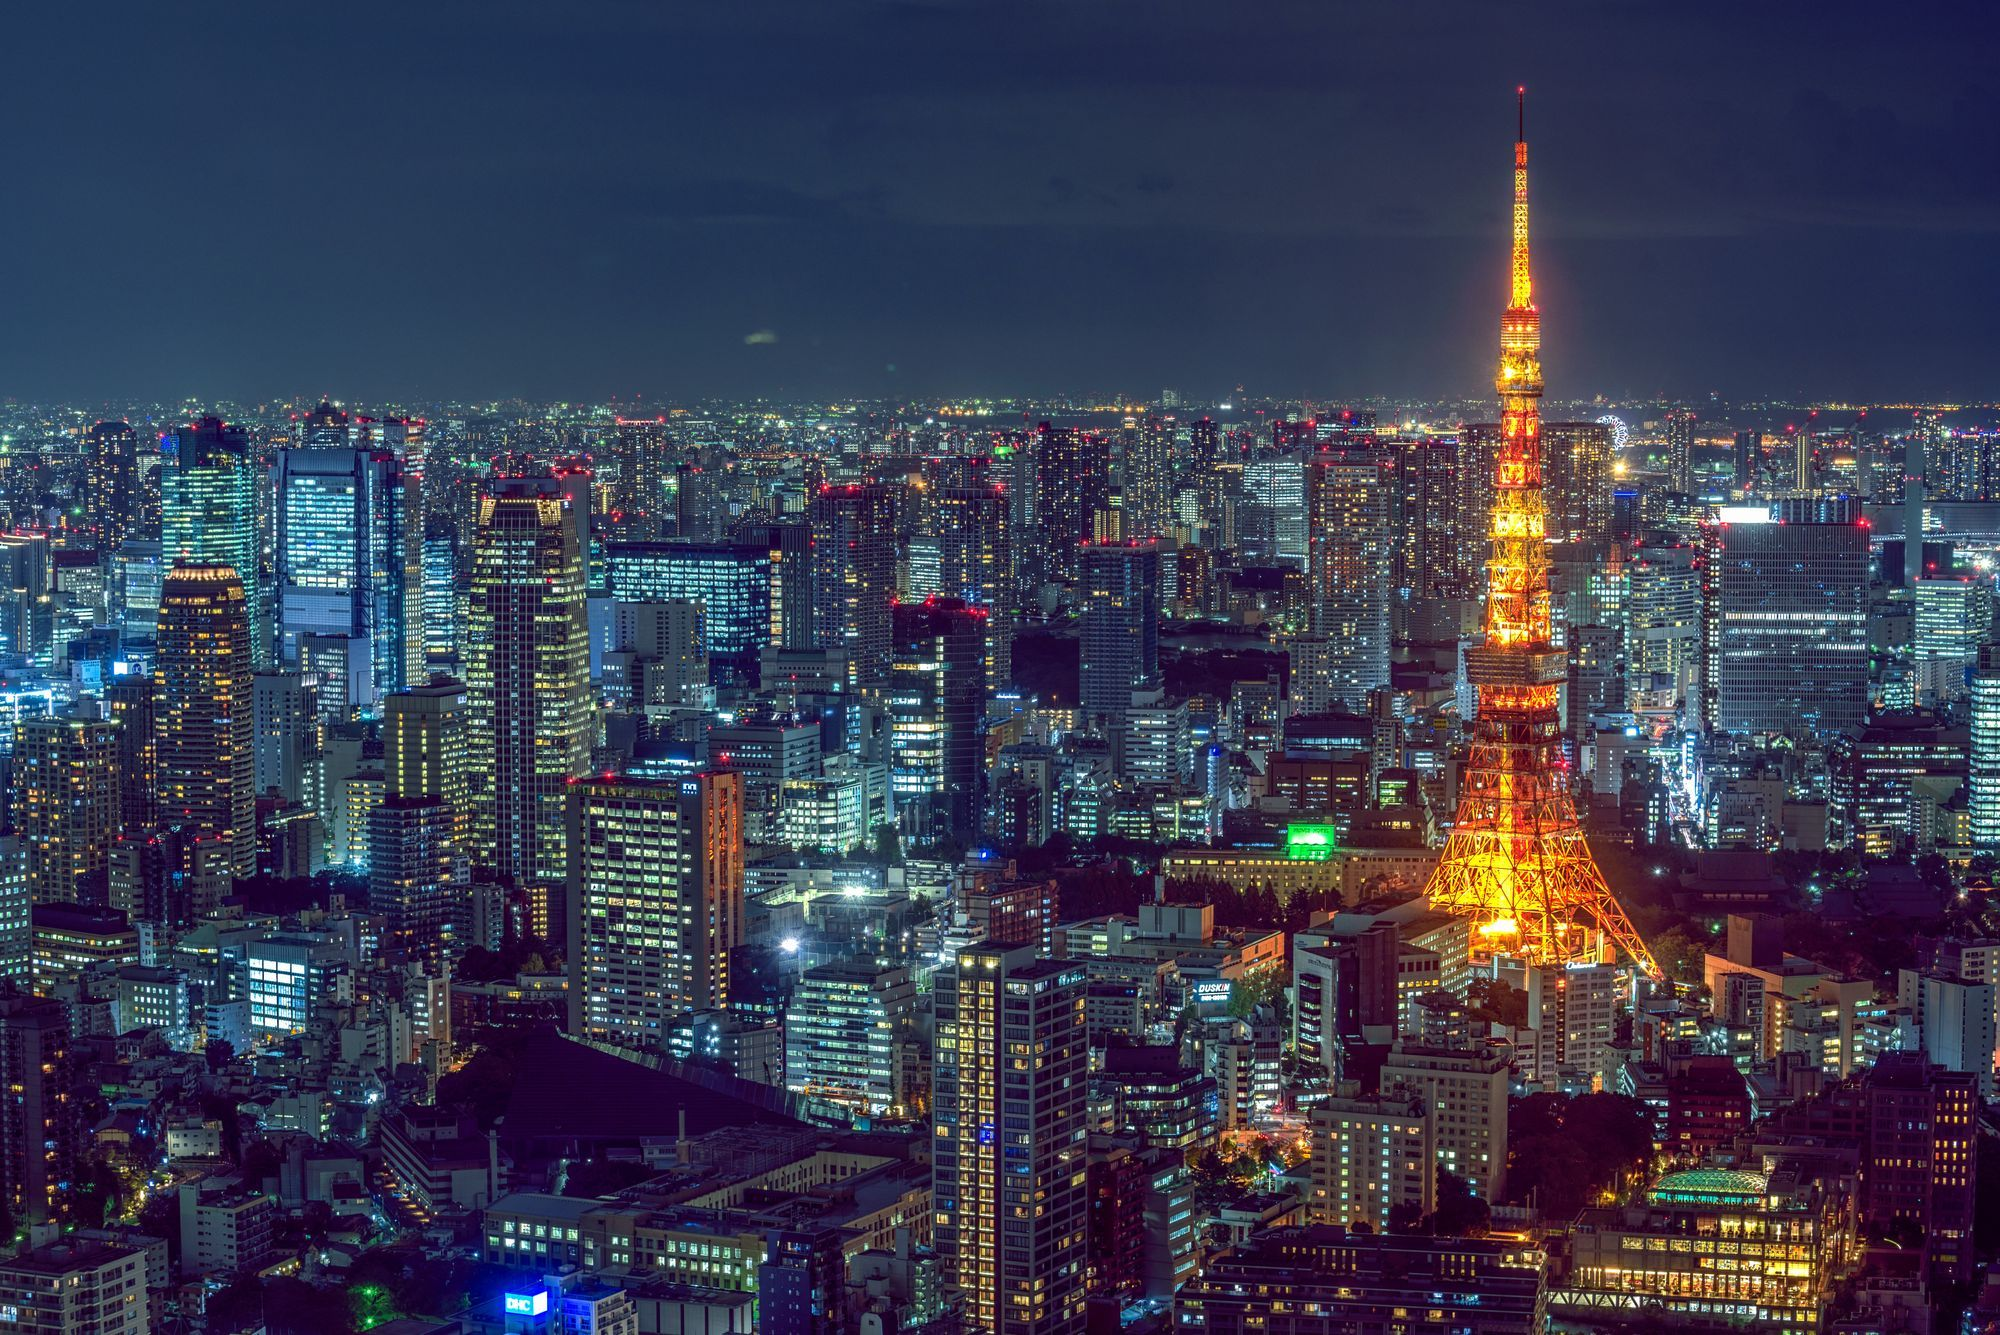 APAC Commercial Real Estate Holds Steady in Q1 2021, Tech Boom Driving Demand for Real Estate